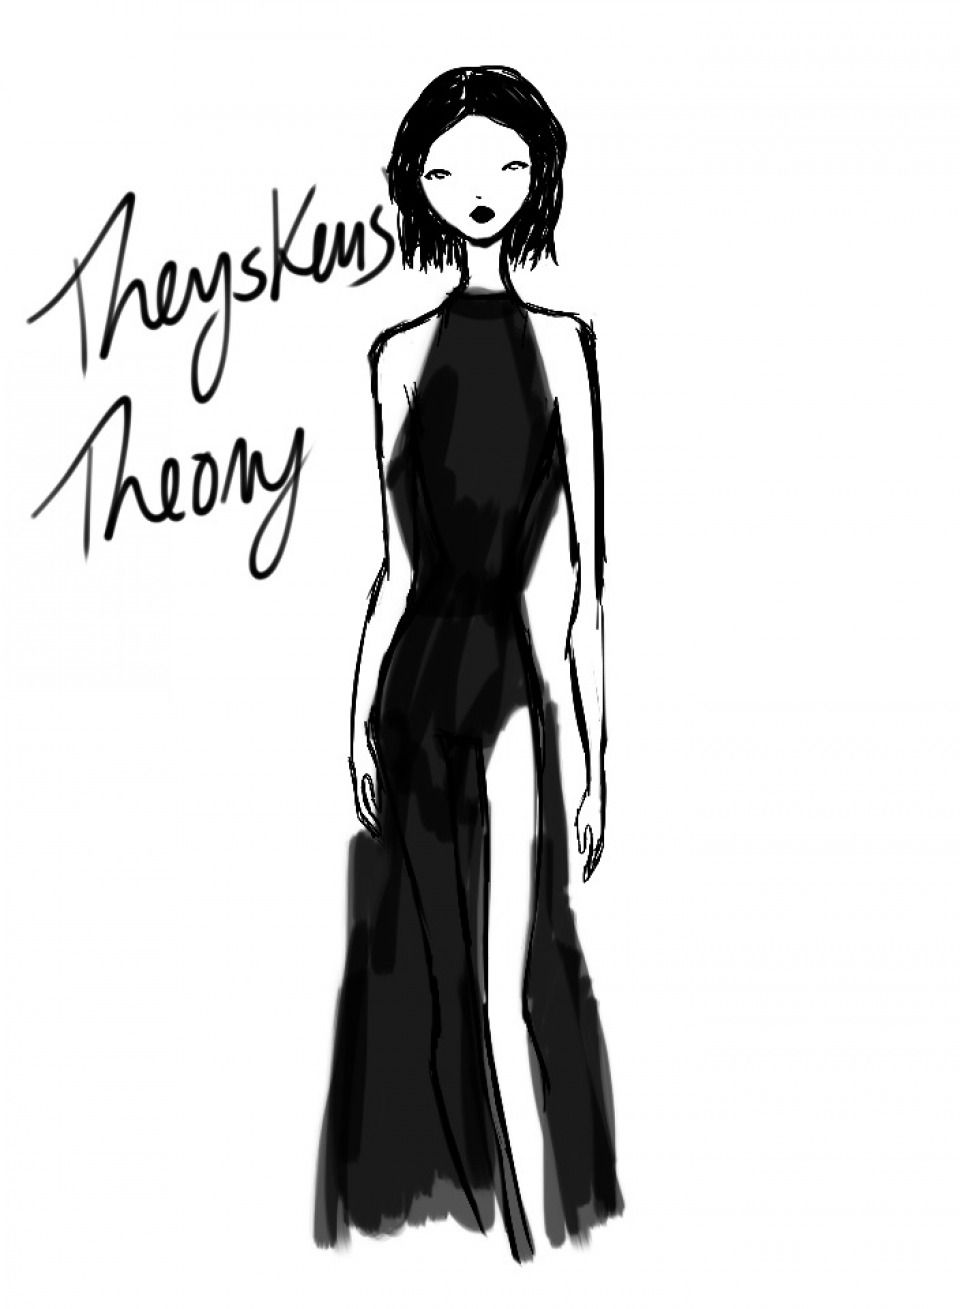 Artist Rei Nadal sketches live from the Theysken's Theory show - New York Womenswear S/S 2013 - SHOWstudio - The Home of Fashion Film